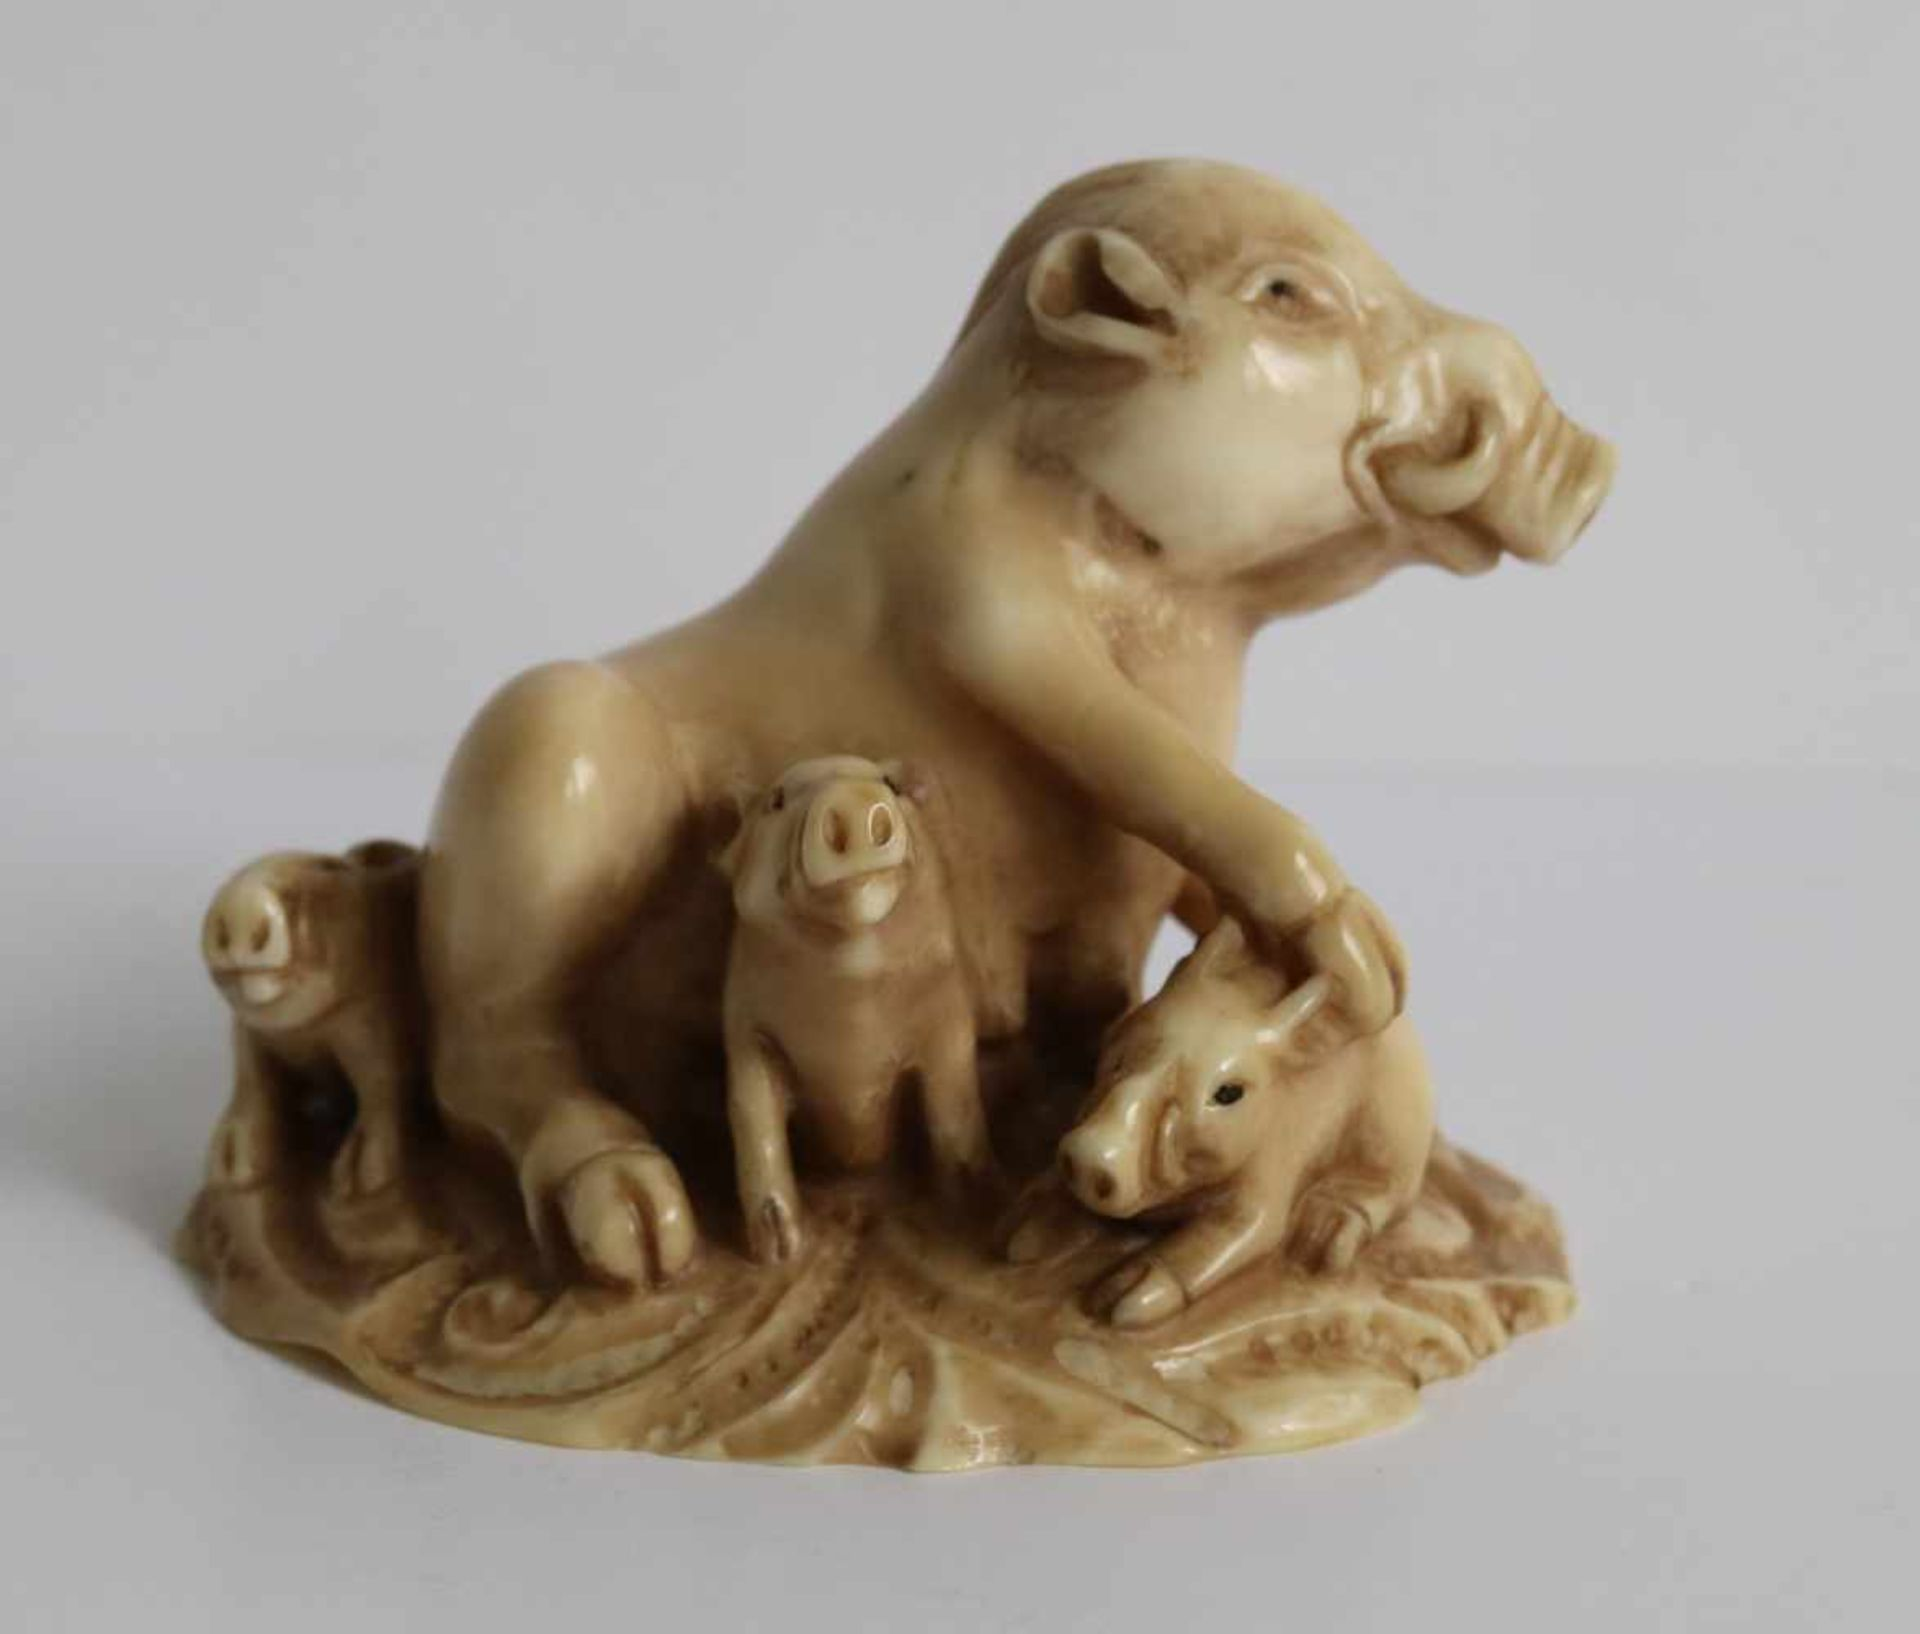 Los 466 - Netsuke Okimono Ivory a wild sow and her cubs Japan, MEIJI period H 3,7 cm fine quality private